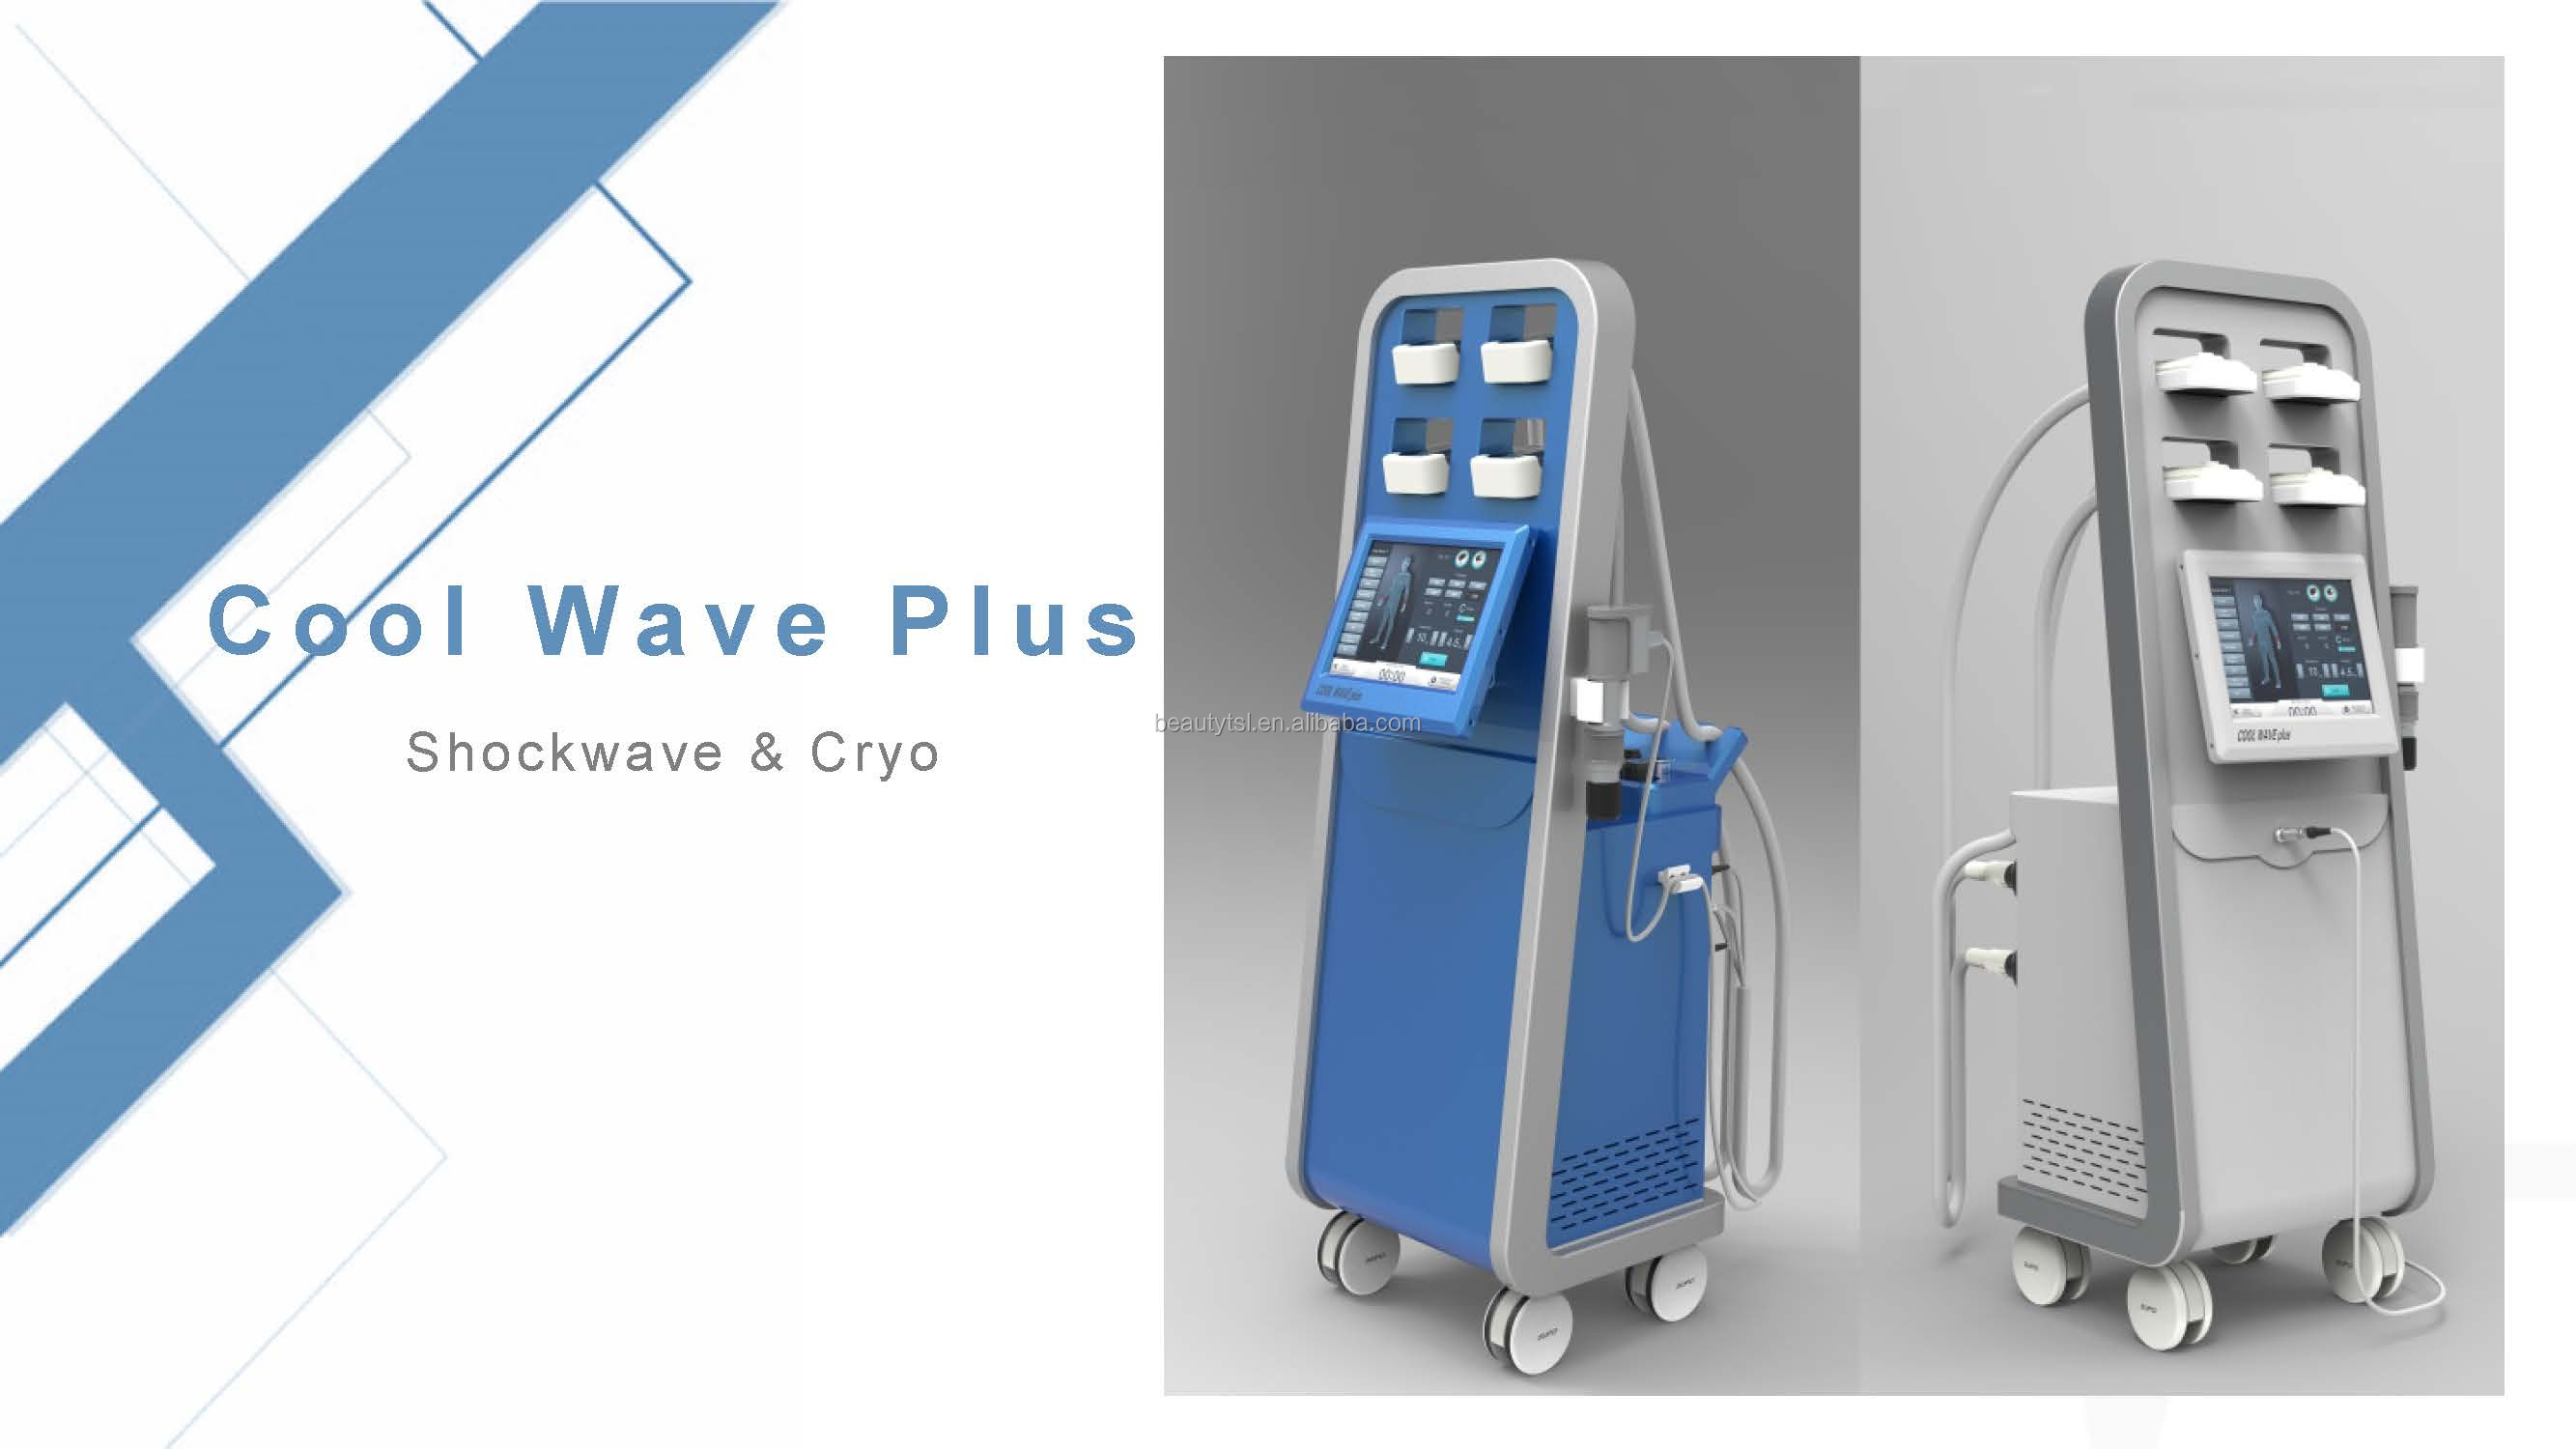 LINGMEI new technology combined cryo +ems in one pad cryo therapy shock wave cellulite removal machine 1.jpg